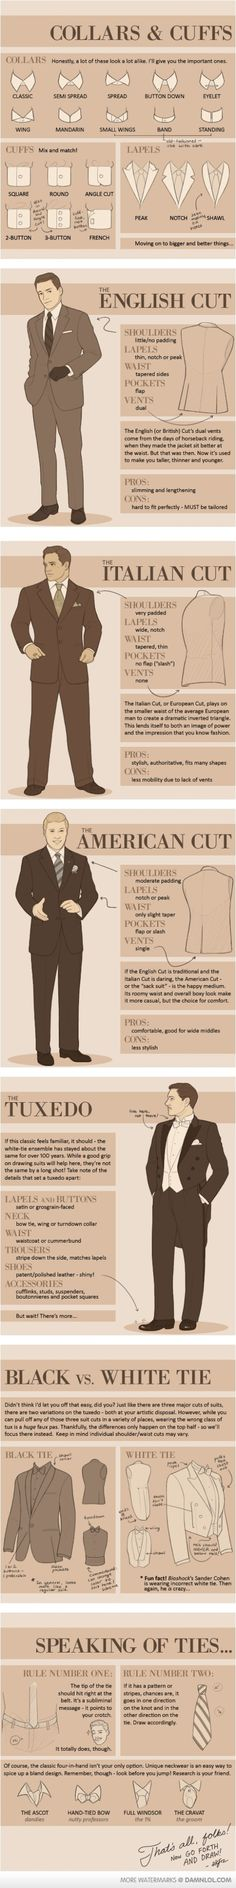 Hot to dress like a sir [infographic]